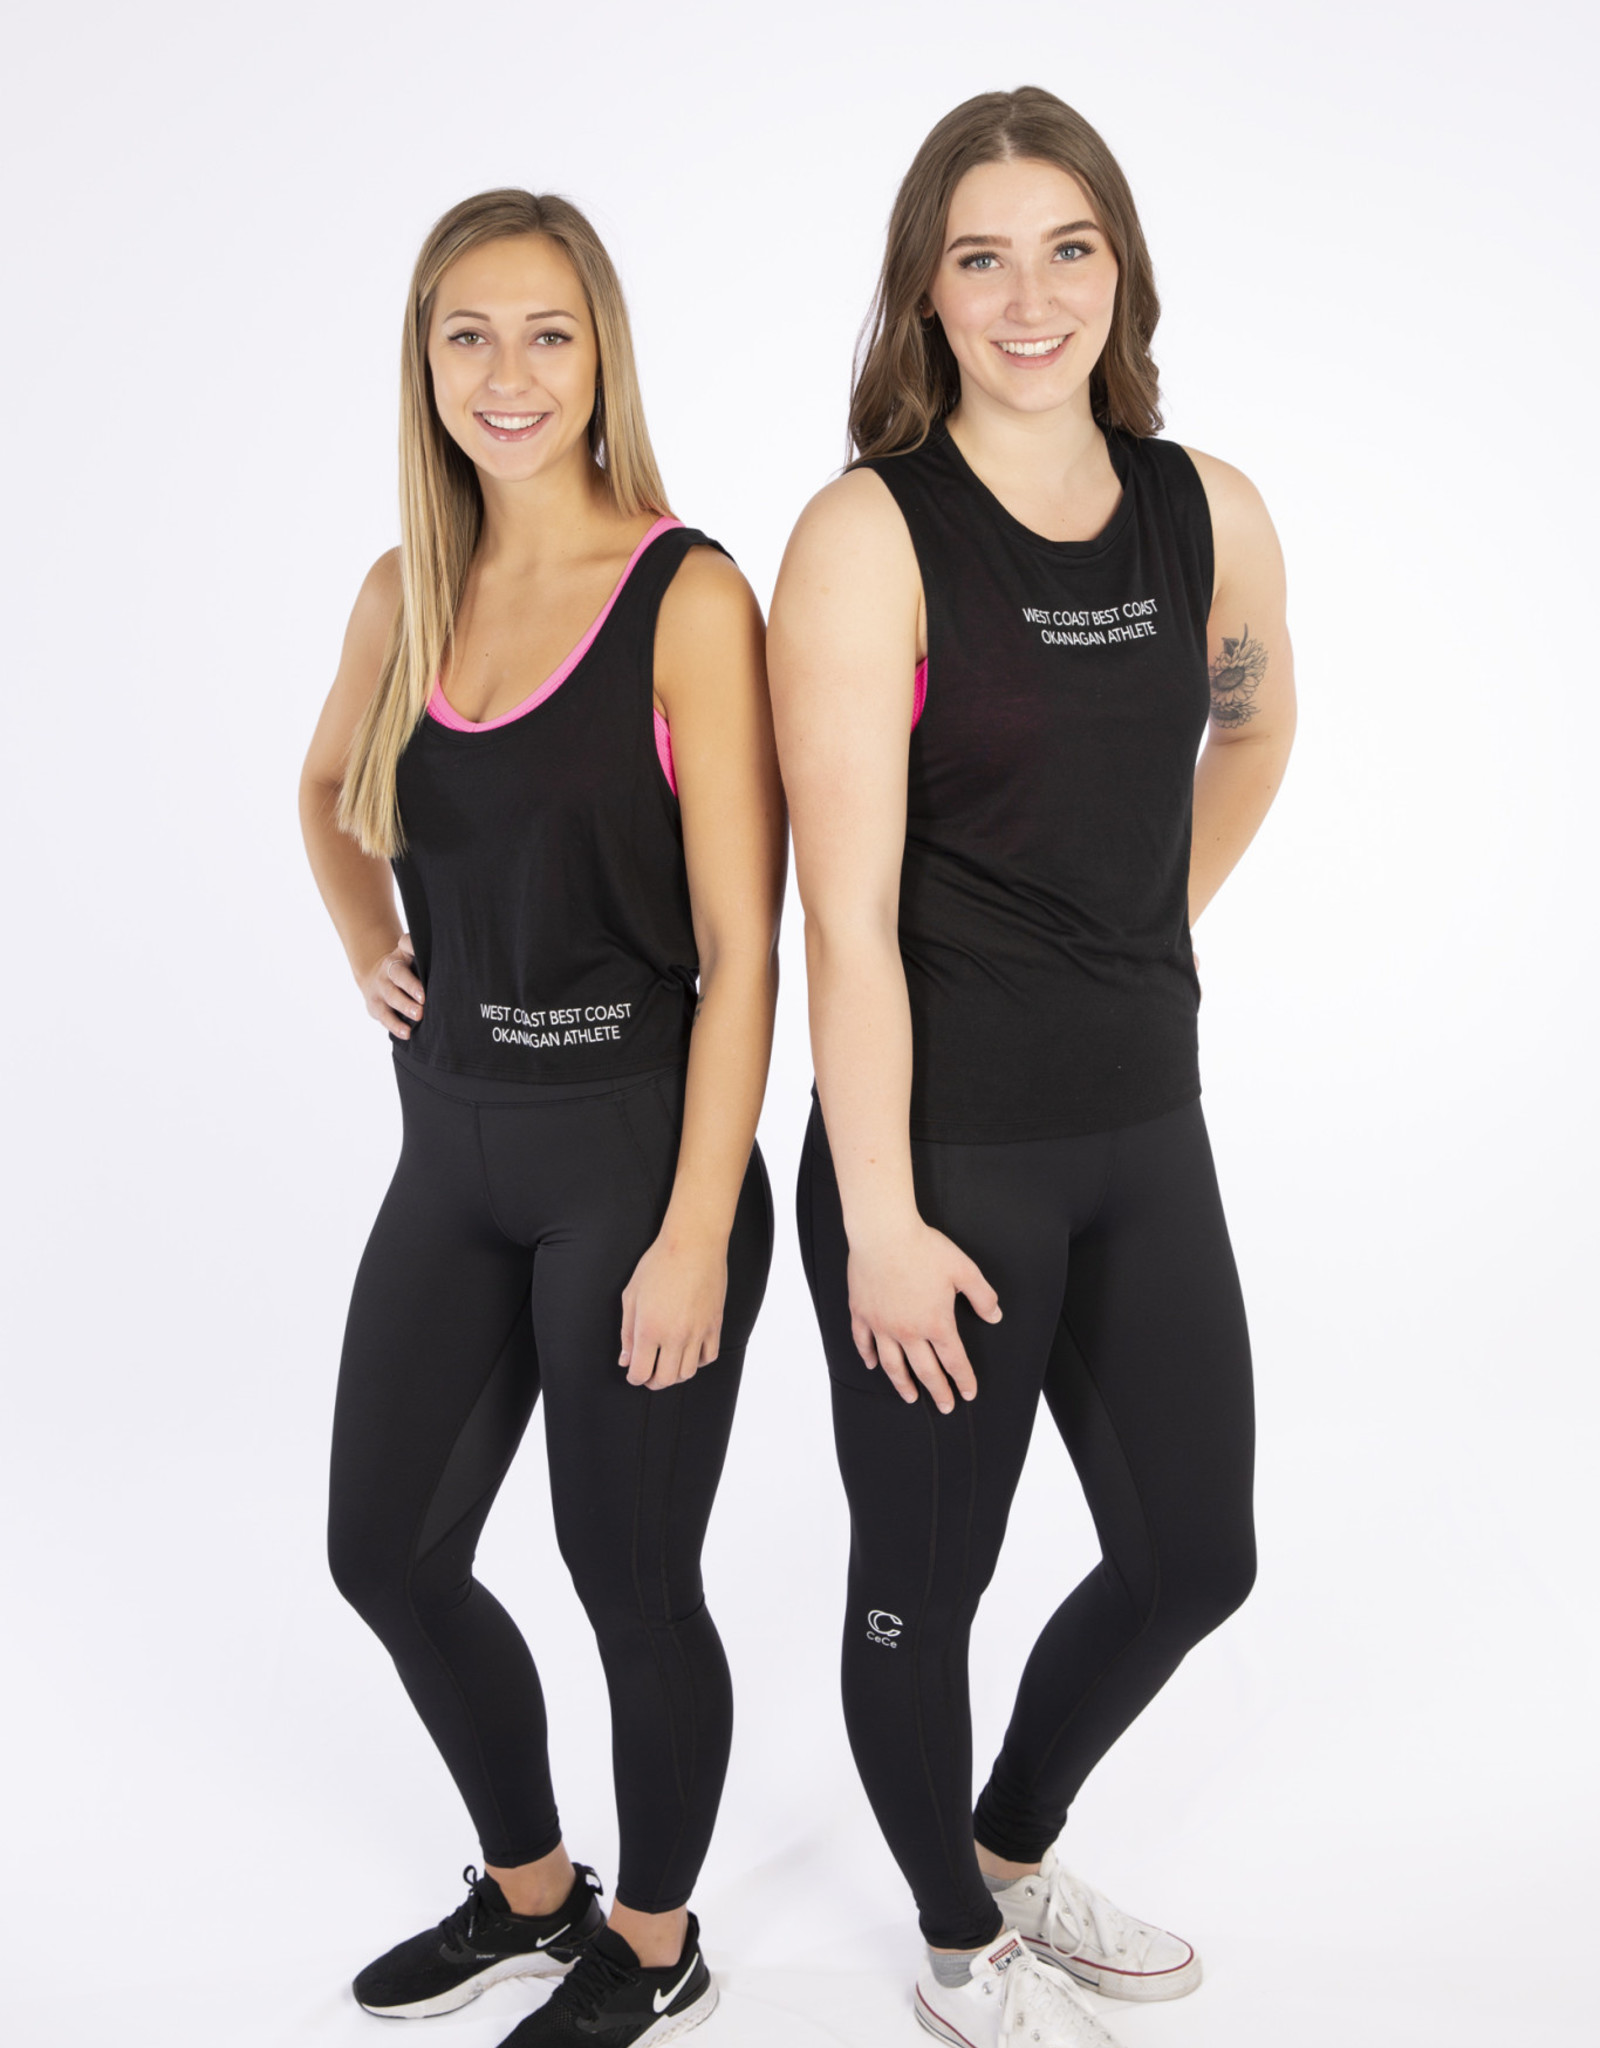 OKANAGAN ATHLETE OA TANKS CROP